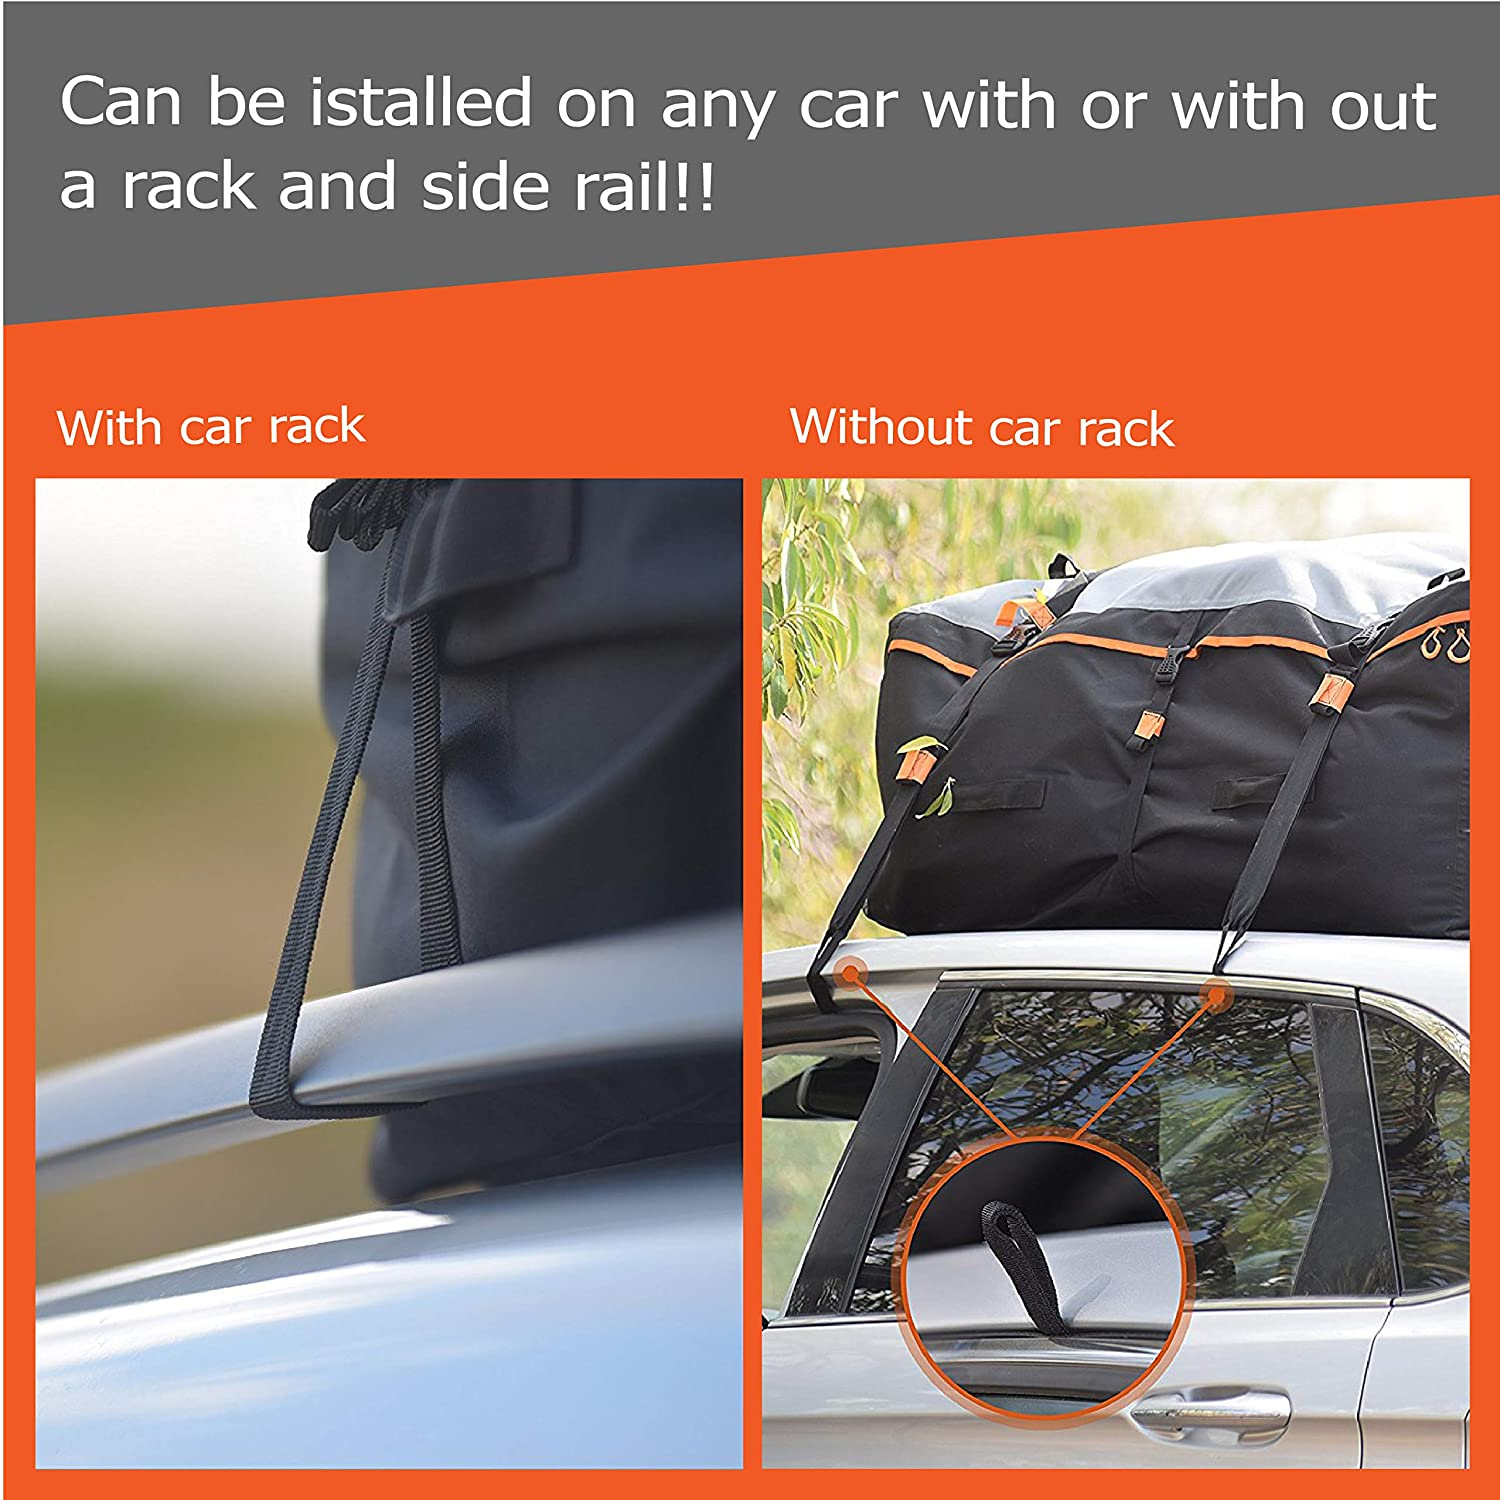 100/% Waterproof Excellent Military Quality Roof-Top Car Bag Fits All Cars With//Without Rack RoofPax Car Roof Bag /& Rooftop Cargo Carrier 4 Door Hooks Included 19 Cubic Feet Heavy Duty Bag